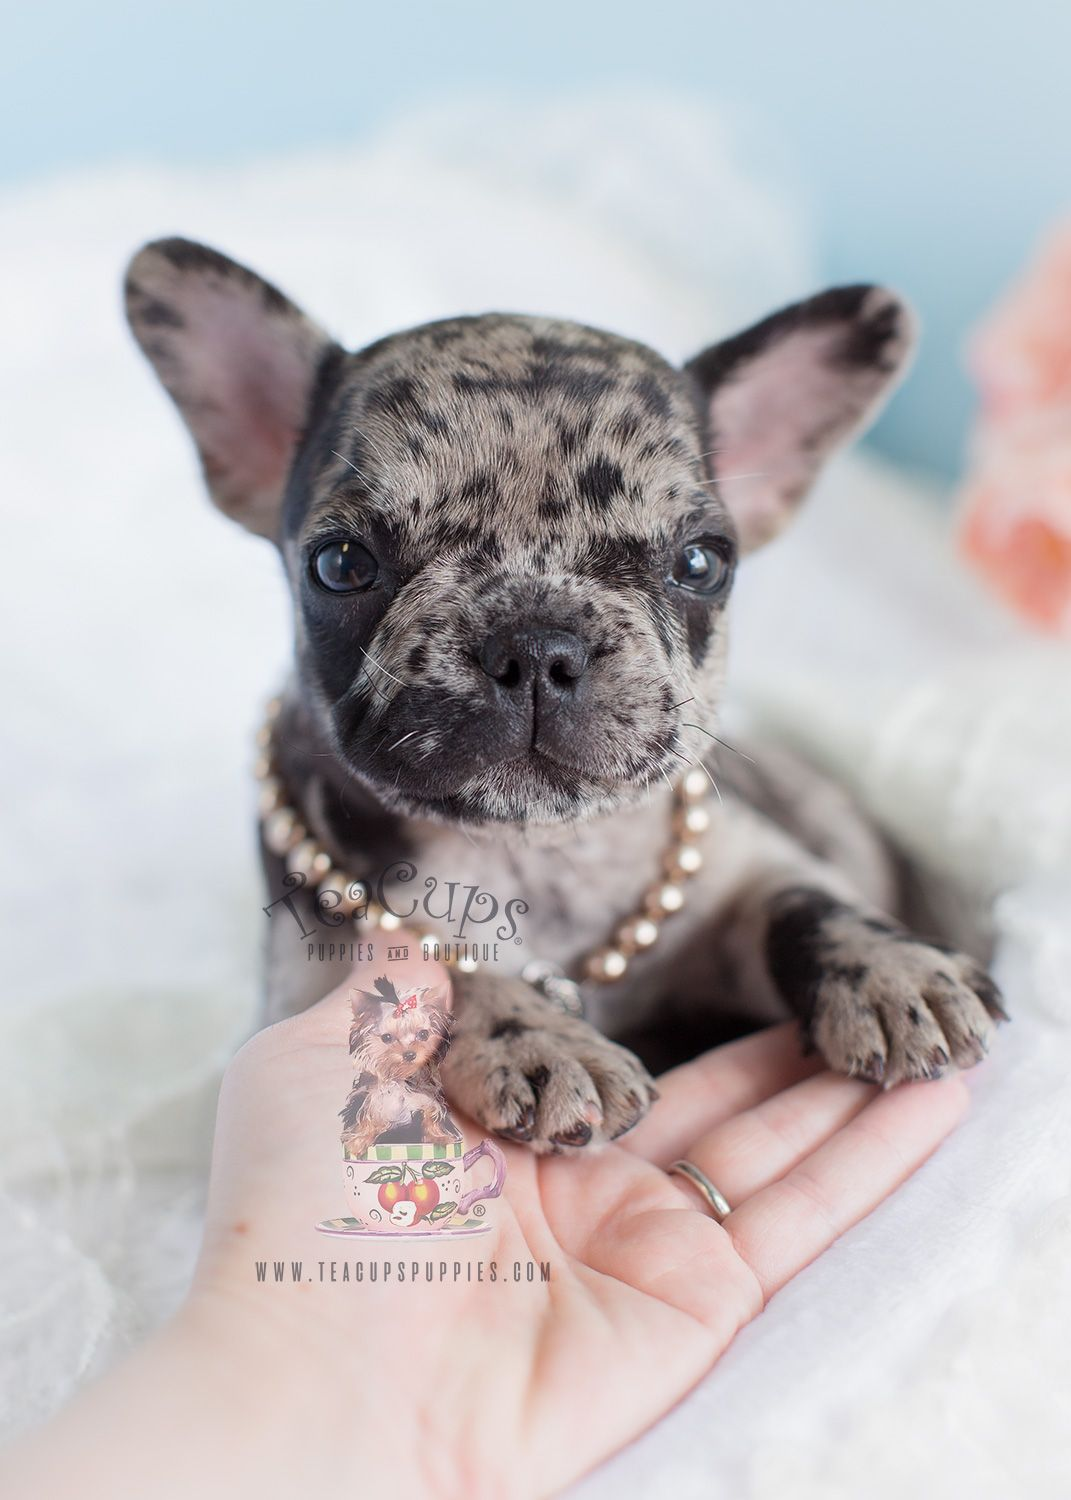 merle french bulldog puppy by teacups, puppies & boutique! www